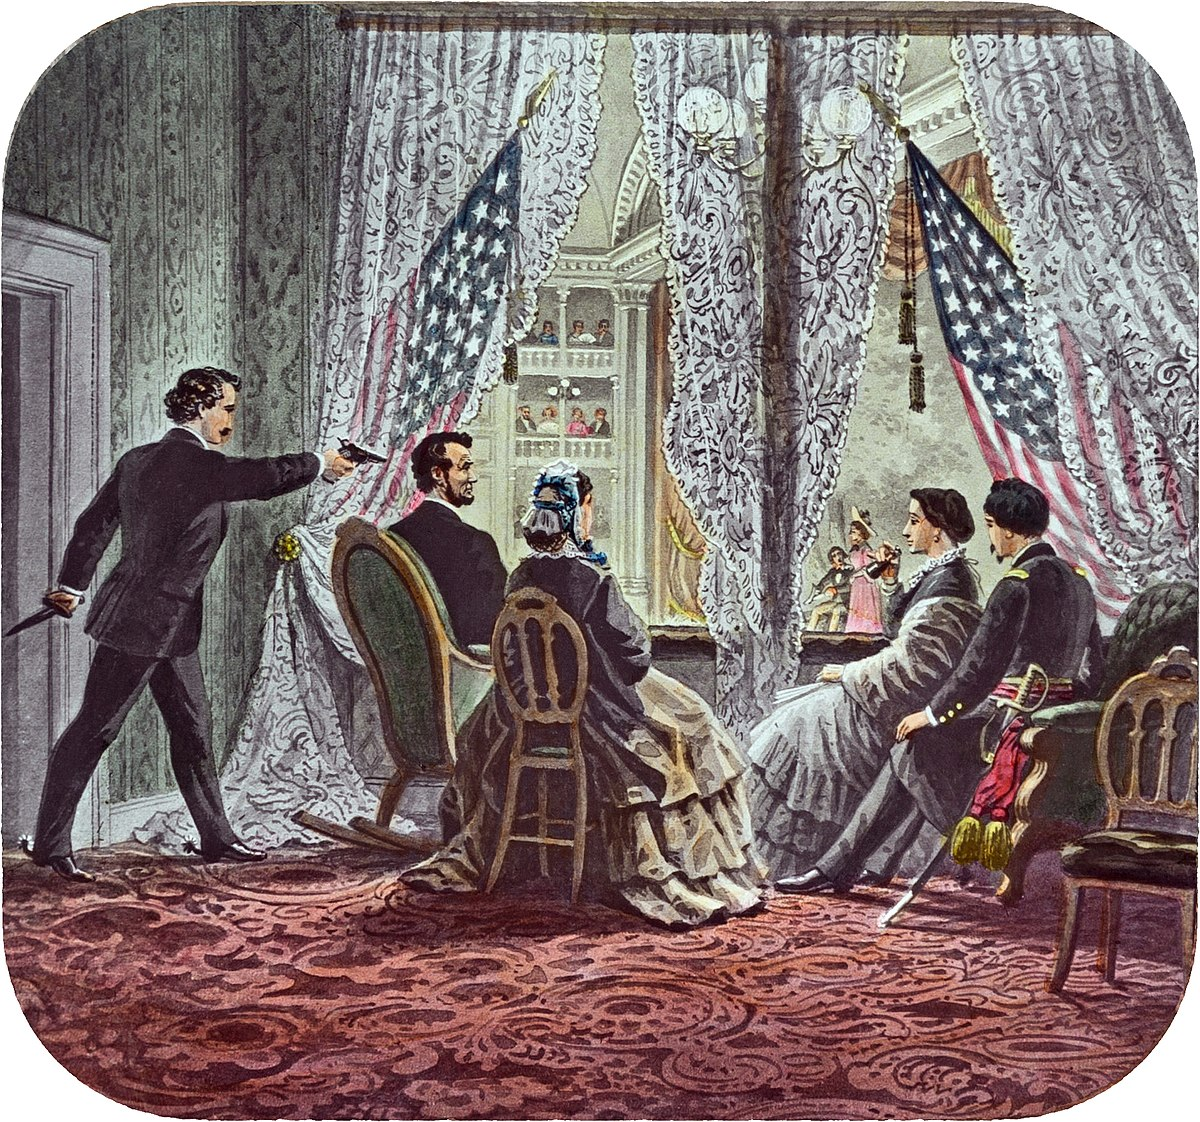 Assassination of Abraham Lincoln - Wikipedia